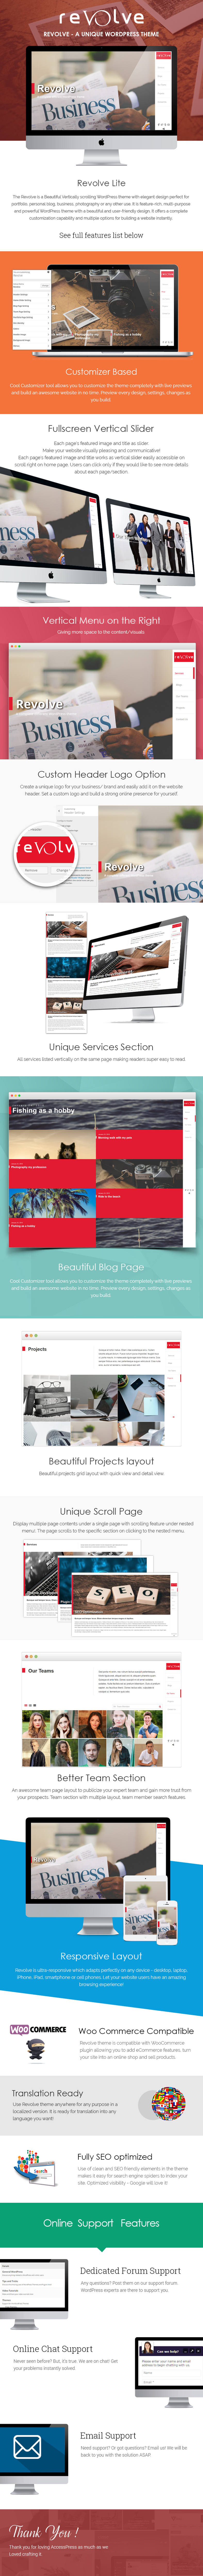 Custom Design Modern Free WordPress Theme – Revolve